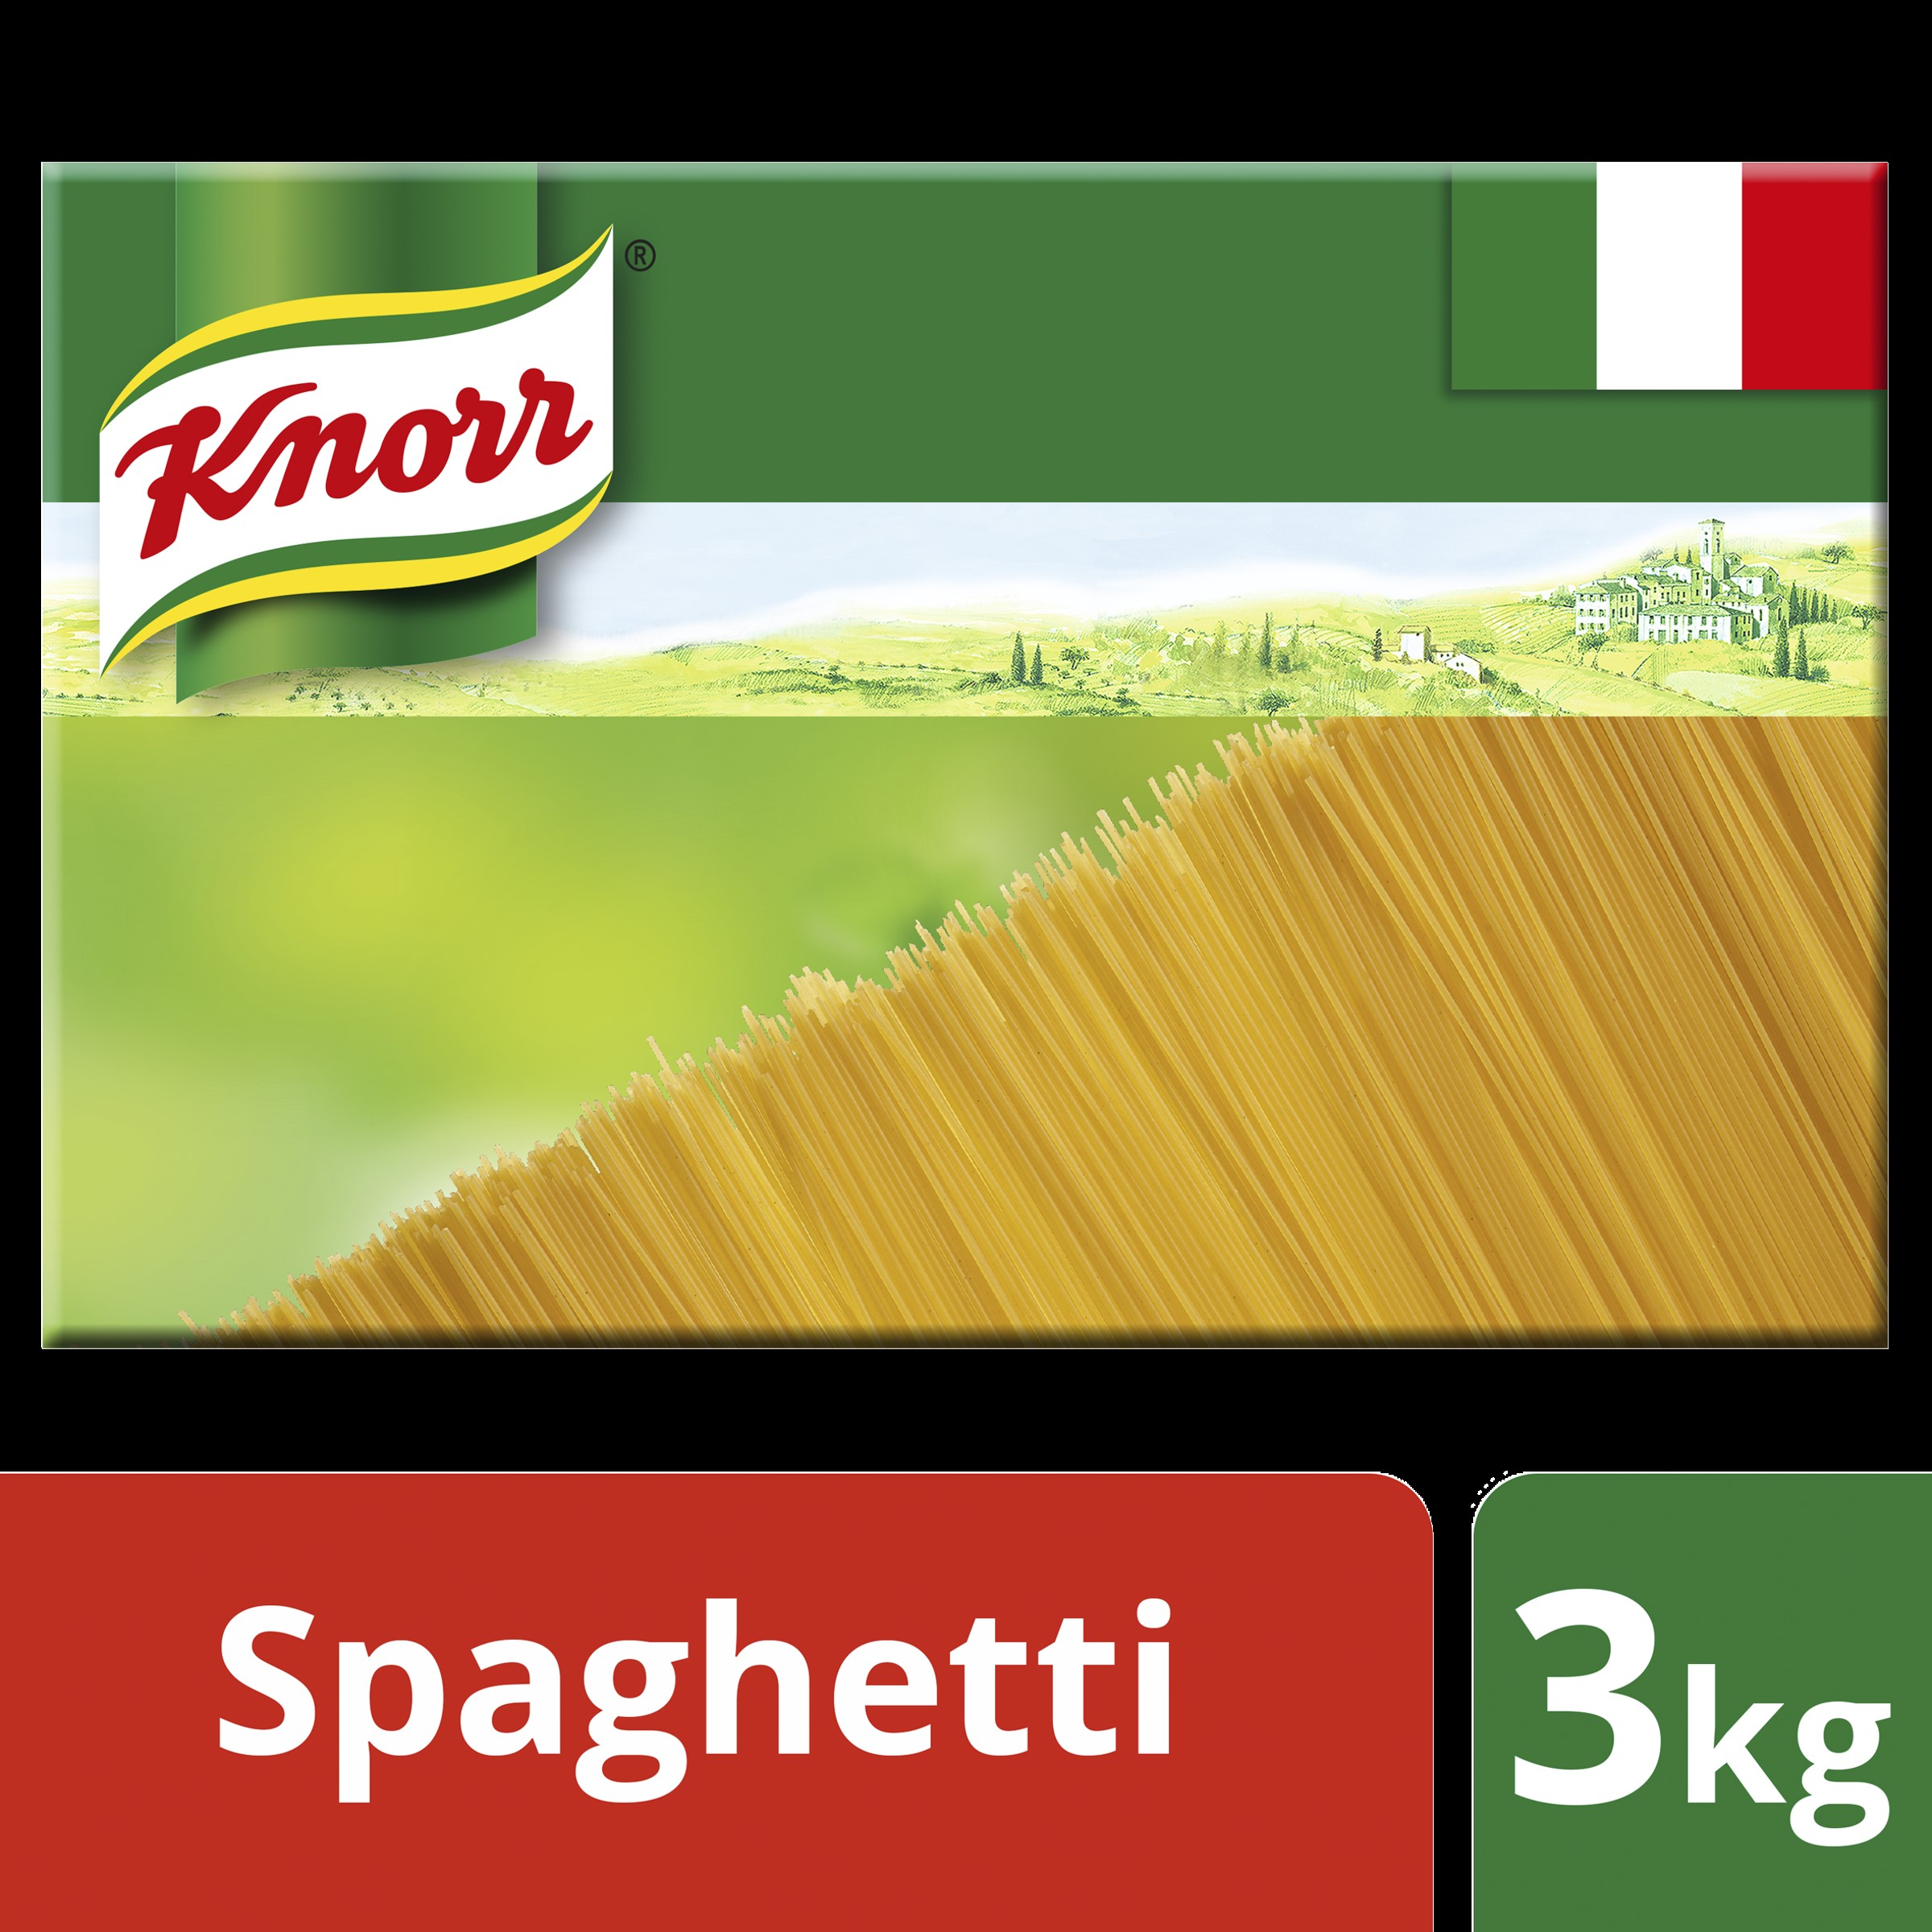 2 x Knorr Spaghetti 3kg Offer